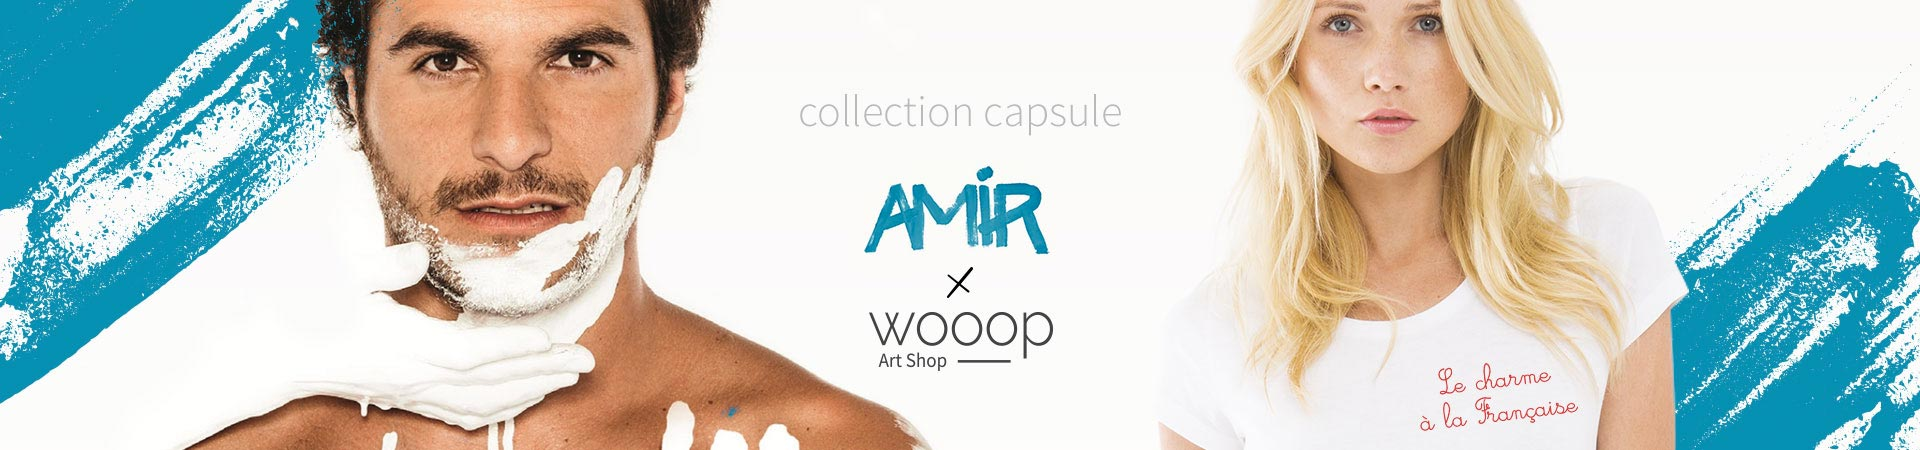 woop x amir  ▲ collection de vêtements Carrousel-Site_Artistes-WooopxAmir